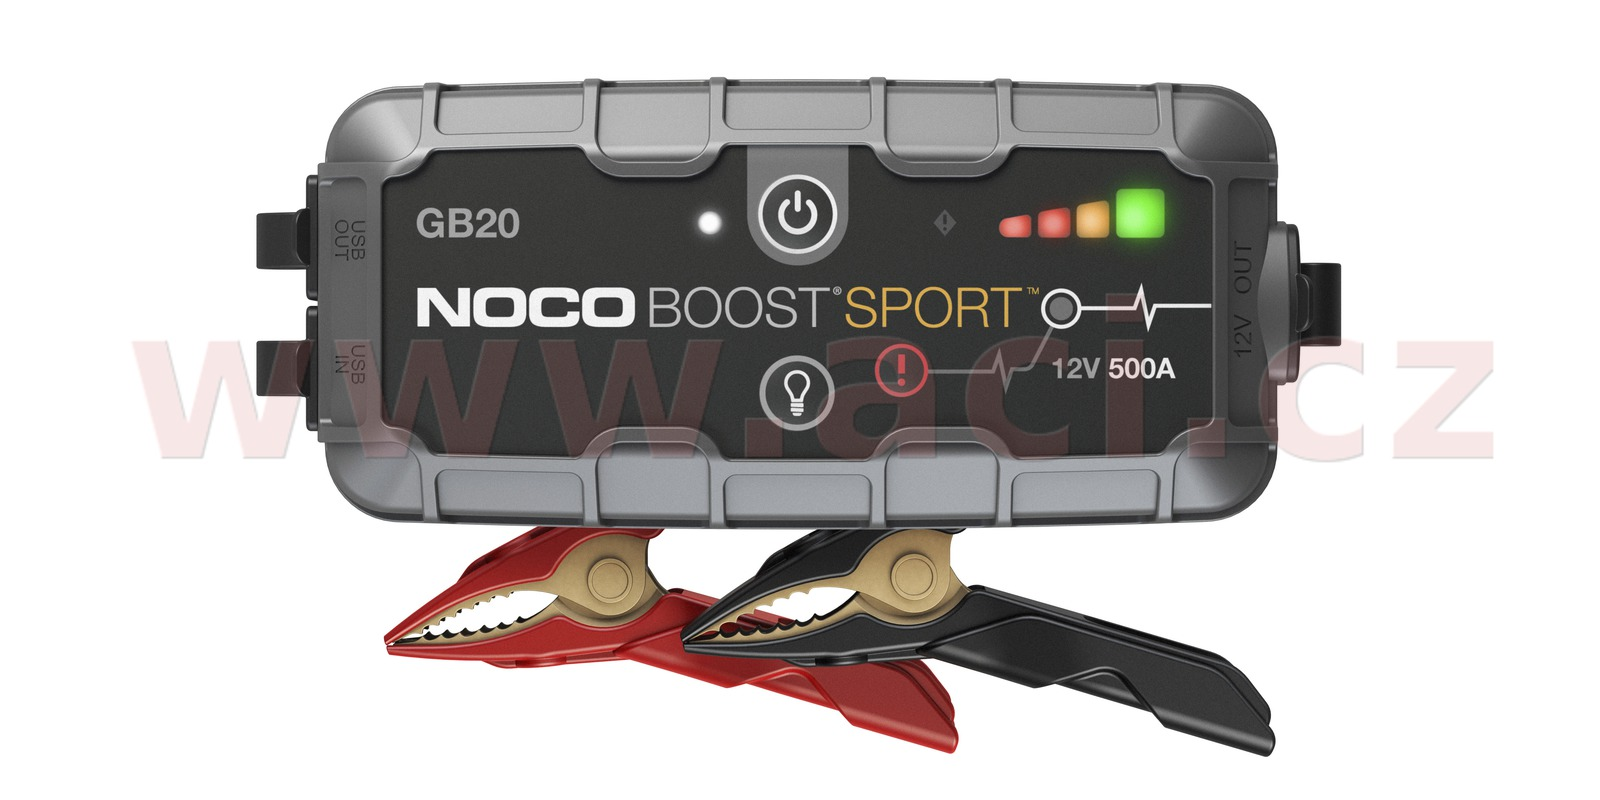 startovací box + power banka, startovací proud 400 A, NOCO GENIUS BOOST SPORT GB20 (NOCO USA)